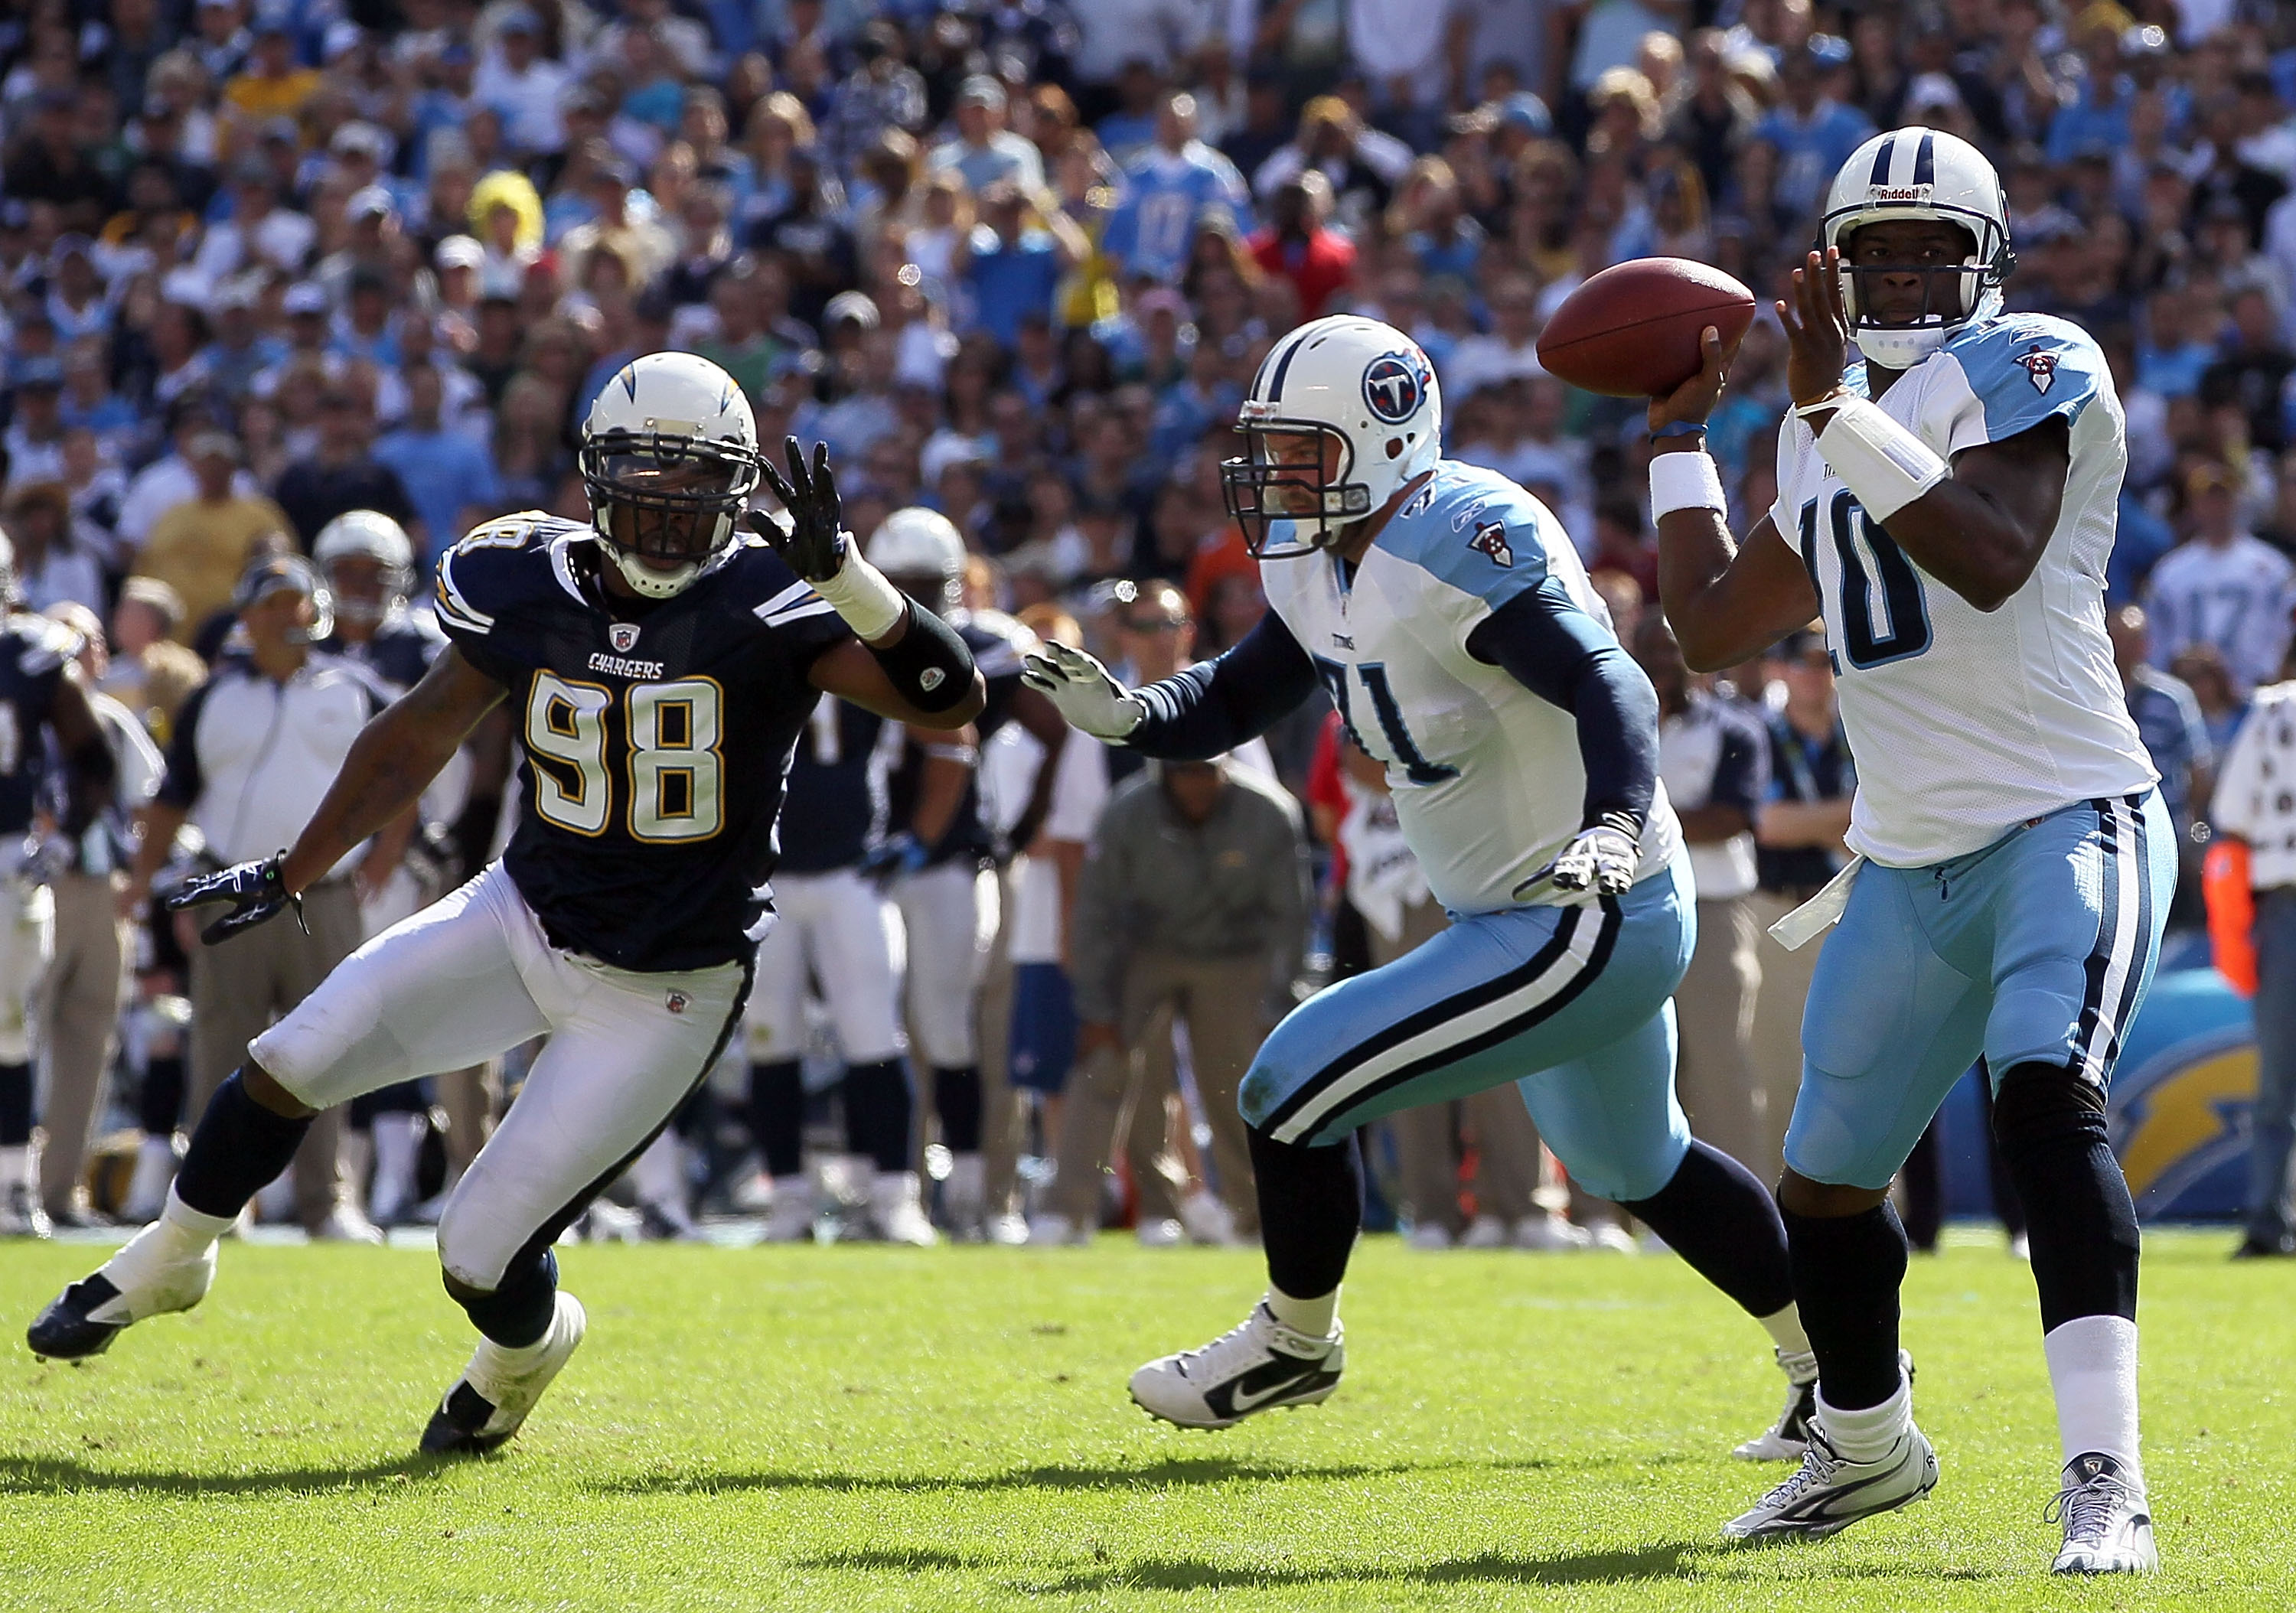 SAN DIEGO - OCTOBER 31:  Quarterback Vince Young #10 of the Tennessee Titans drops back to pass as Antwan Barnes #98 of the San Diego Chargers pressures during the game at Qualcomm Stadium on October 31, 2010 in San Diego, California. The Chargers defeate